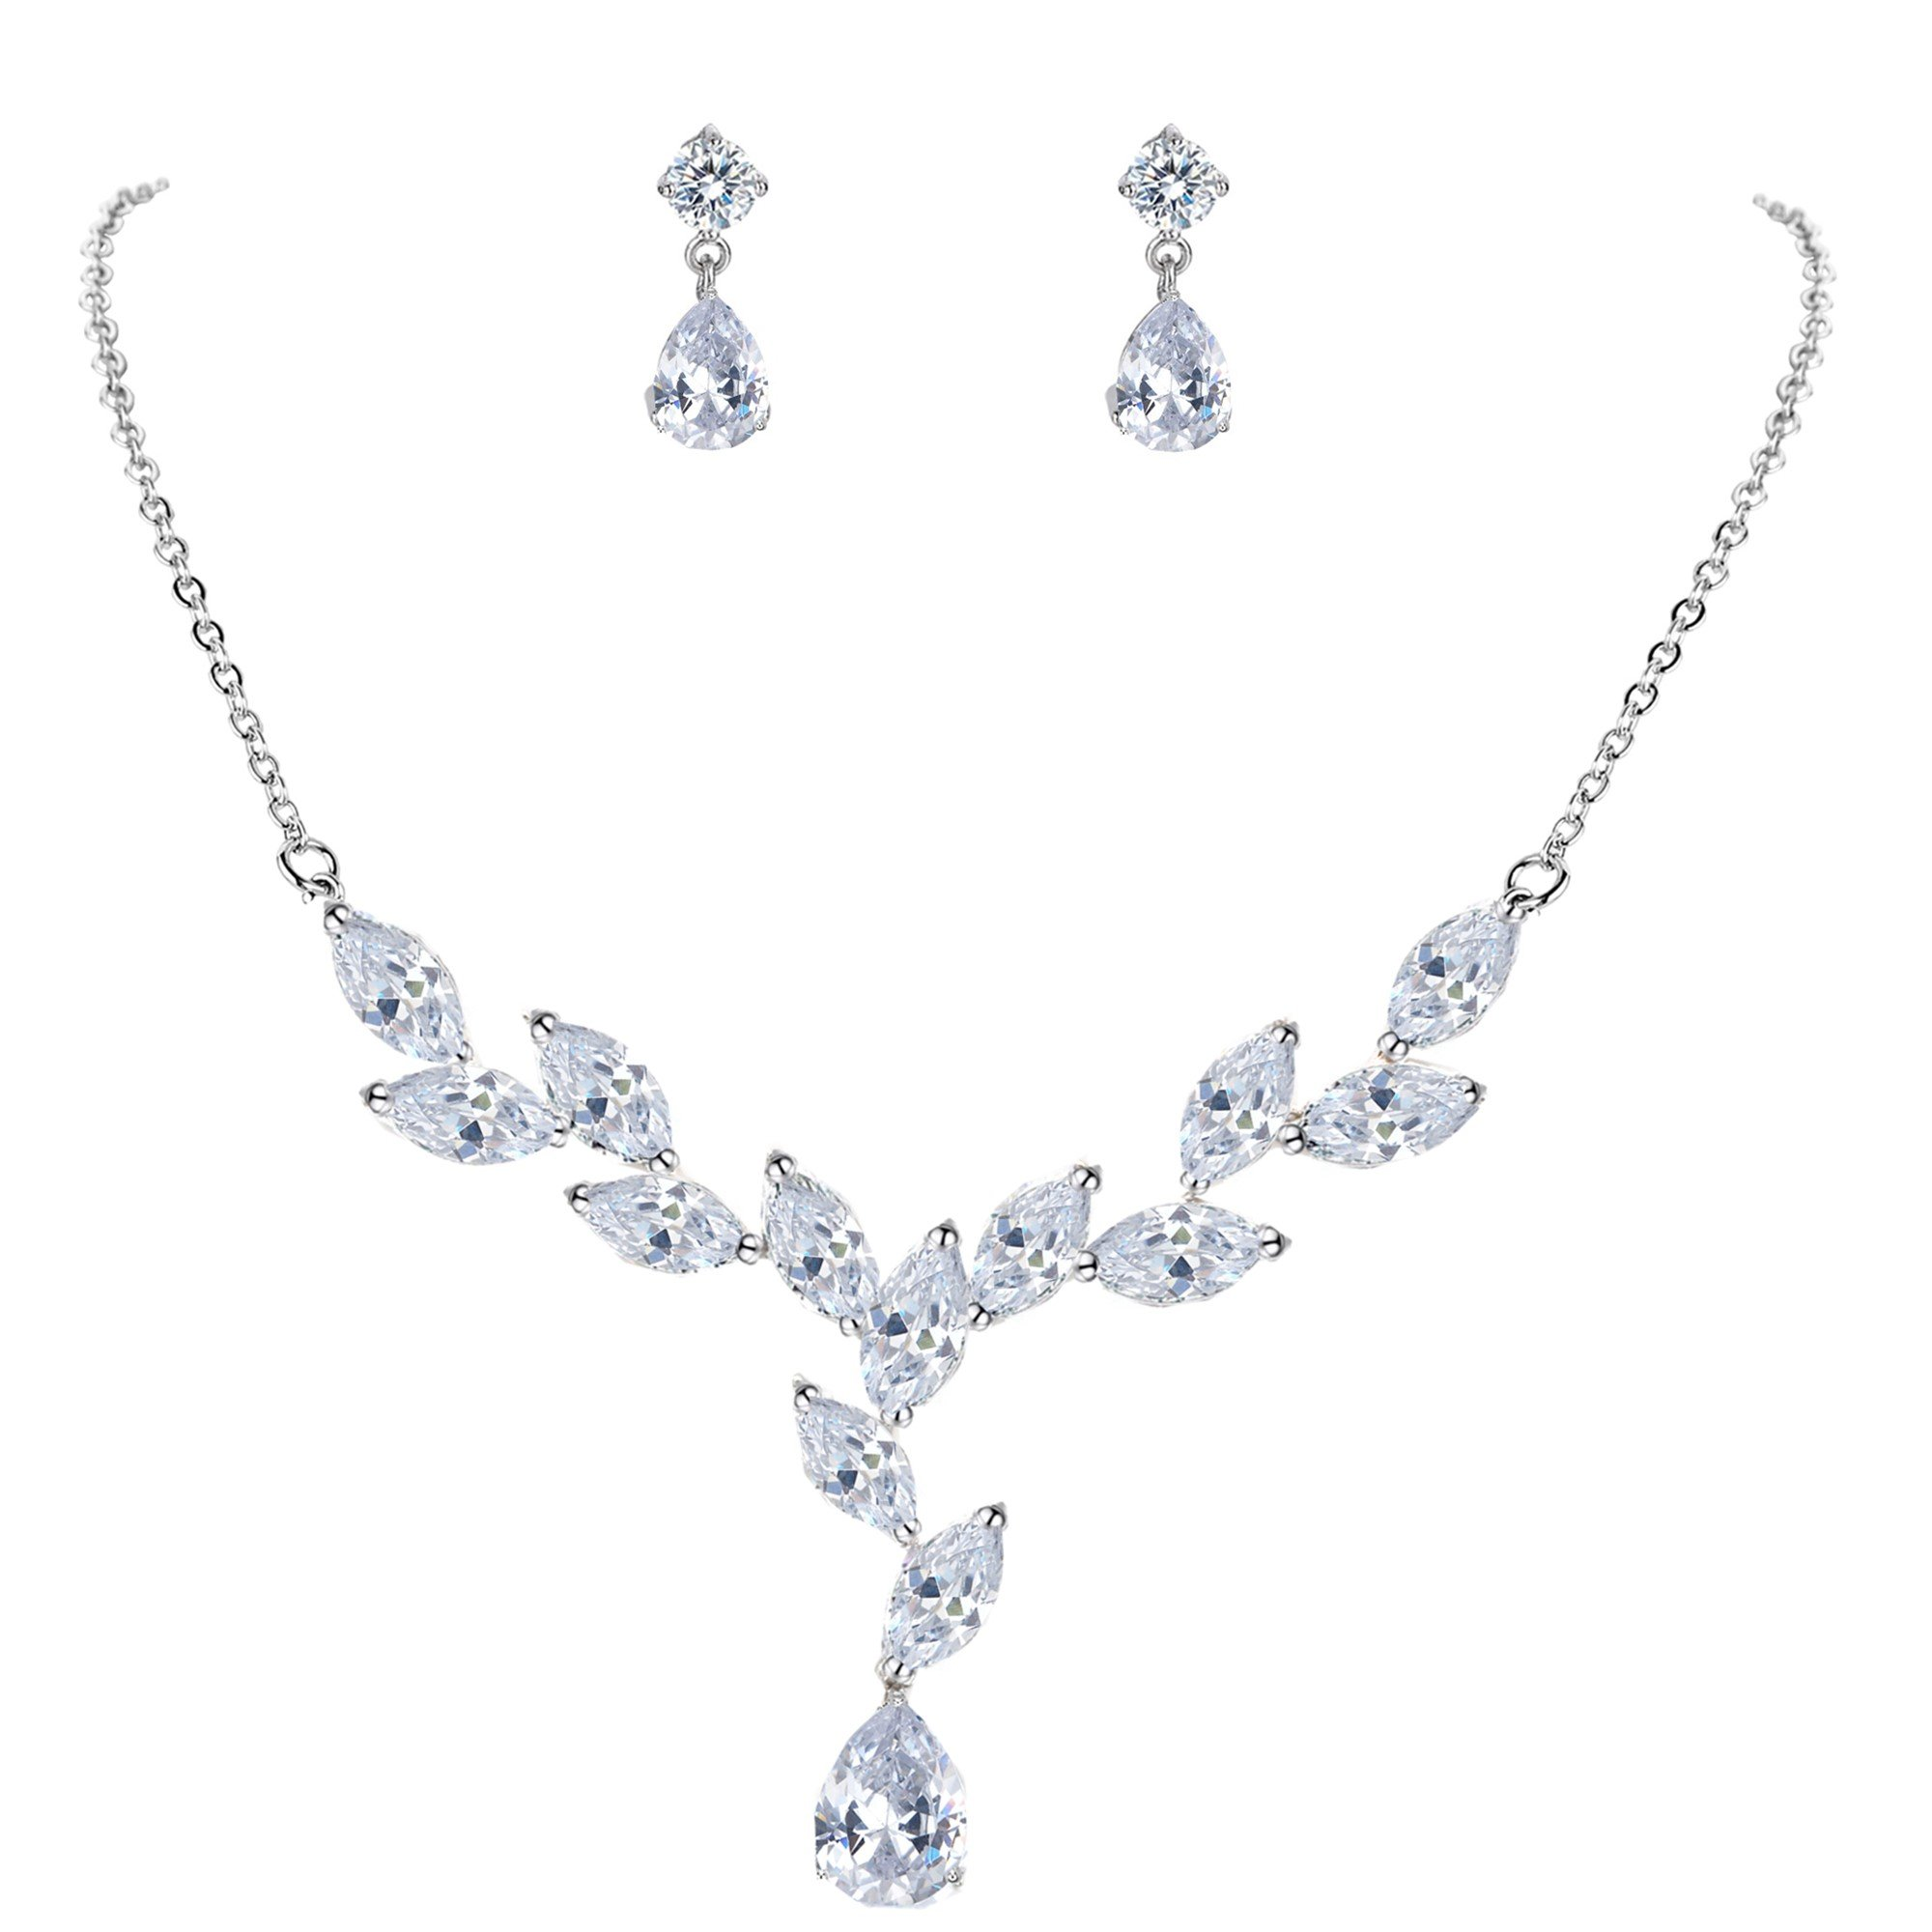 Mondora Women's Bling Cubic Zirconia Teardrop Wedding Y-Necklace Earrings Set Silver-Tone Clear by Mondora (Image #1)